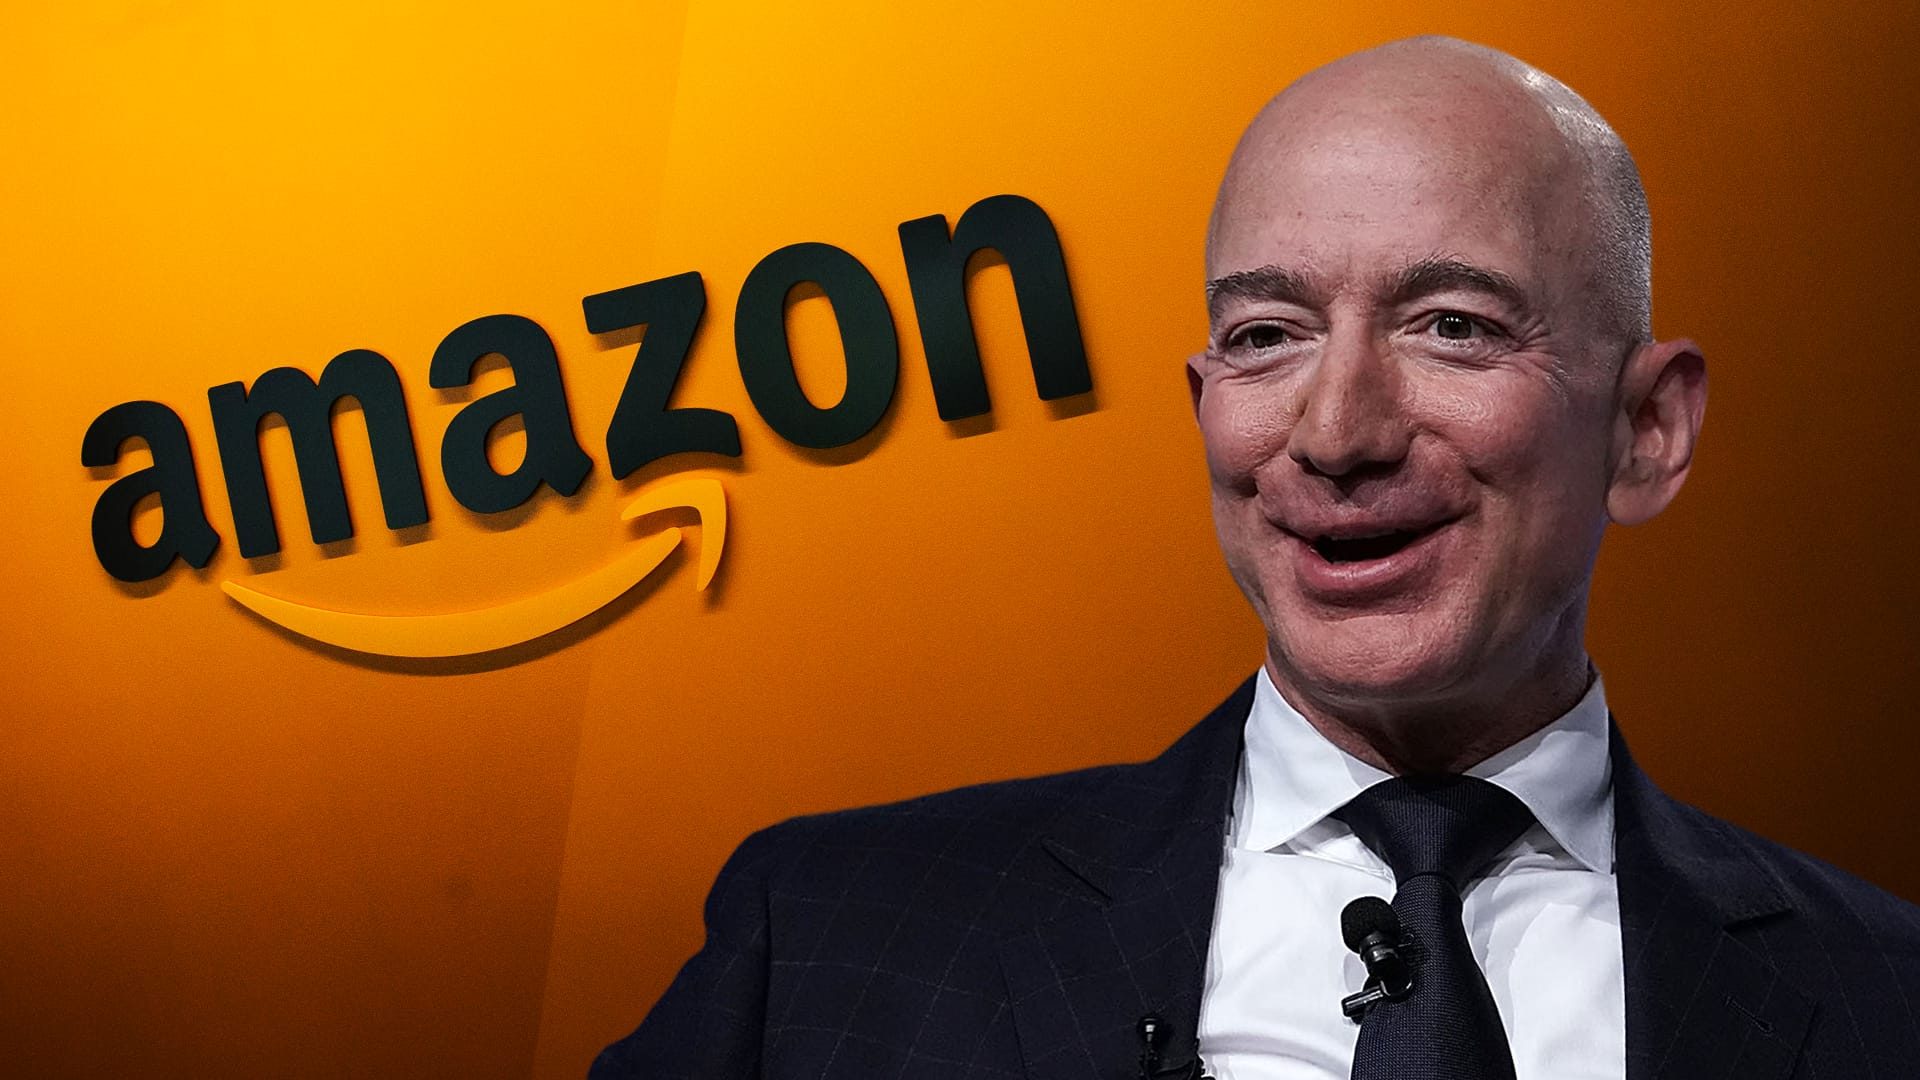 Here are the biggest analyst calls of the day: Amazon, Apple, Micron & more